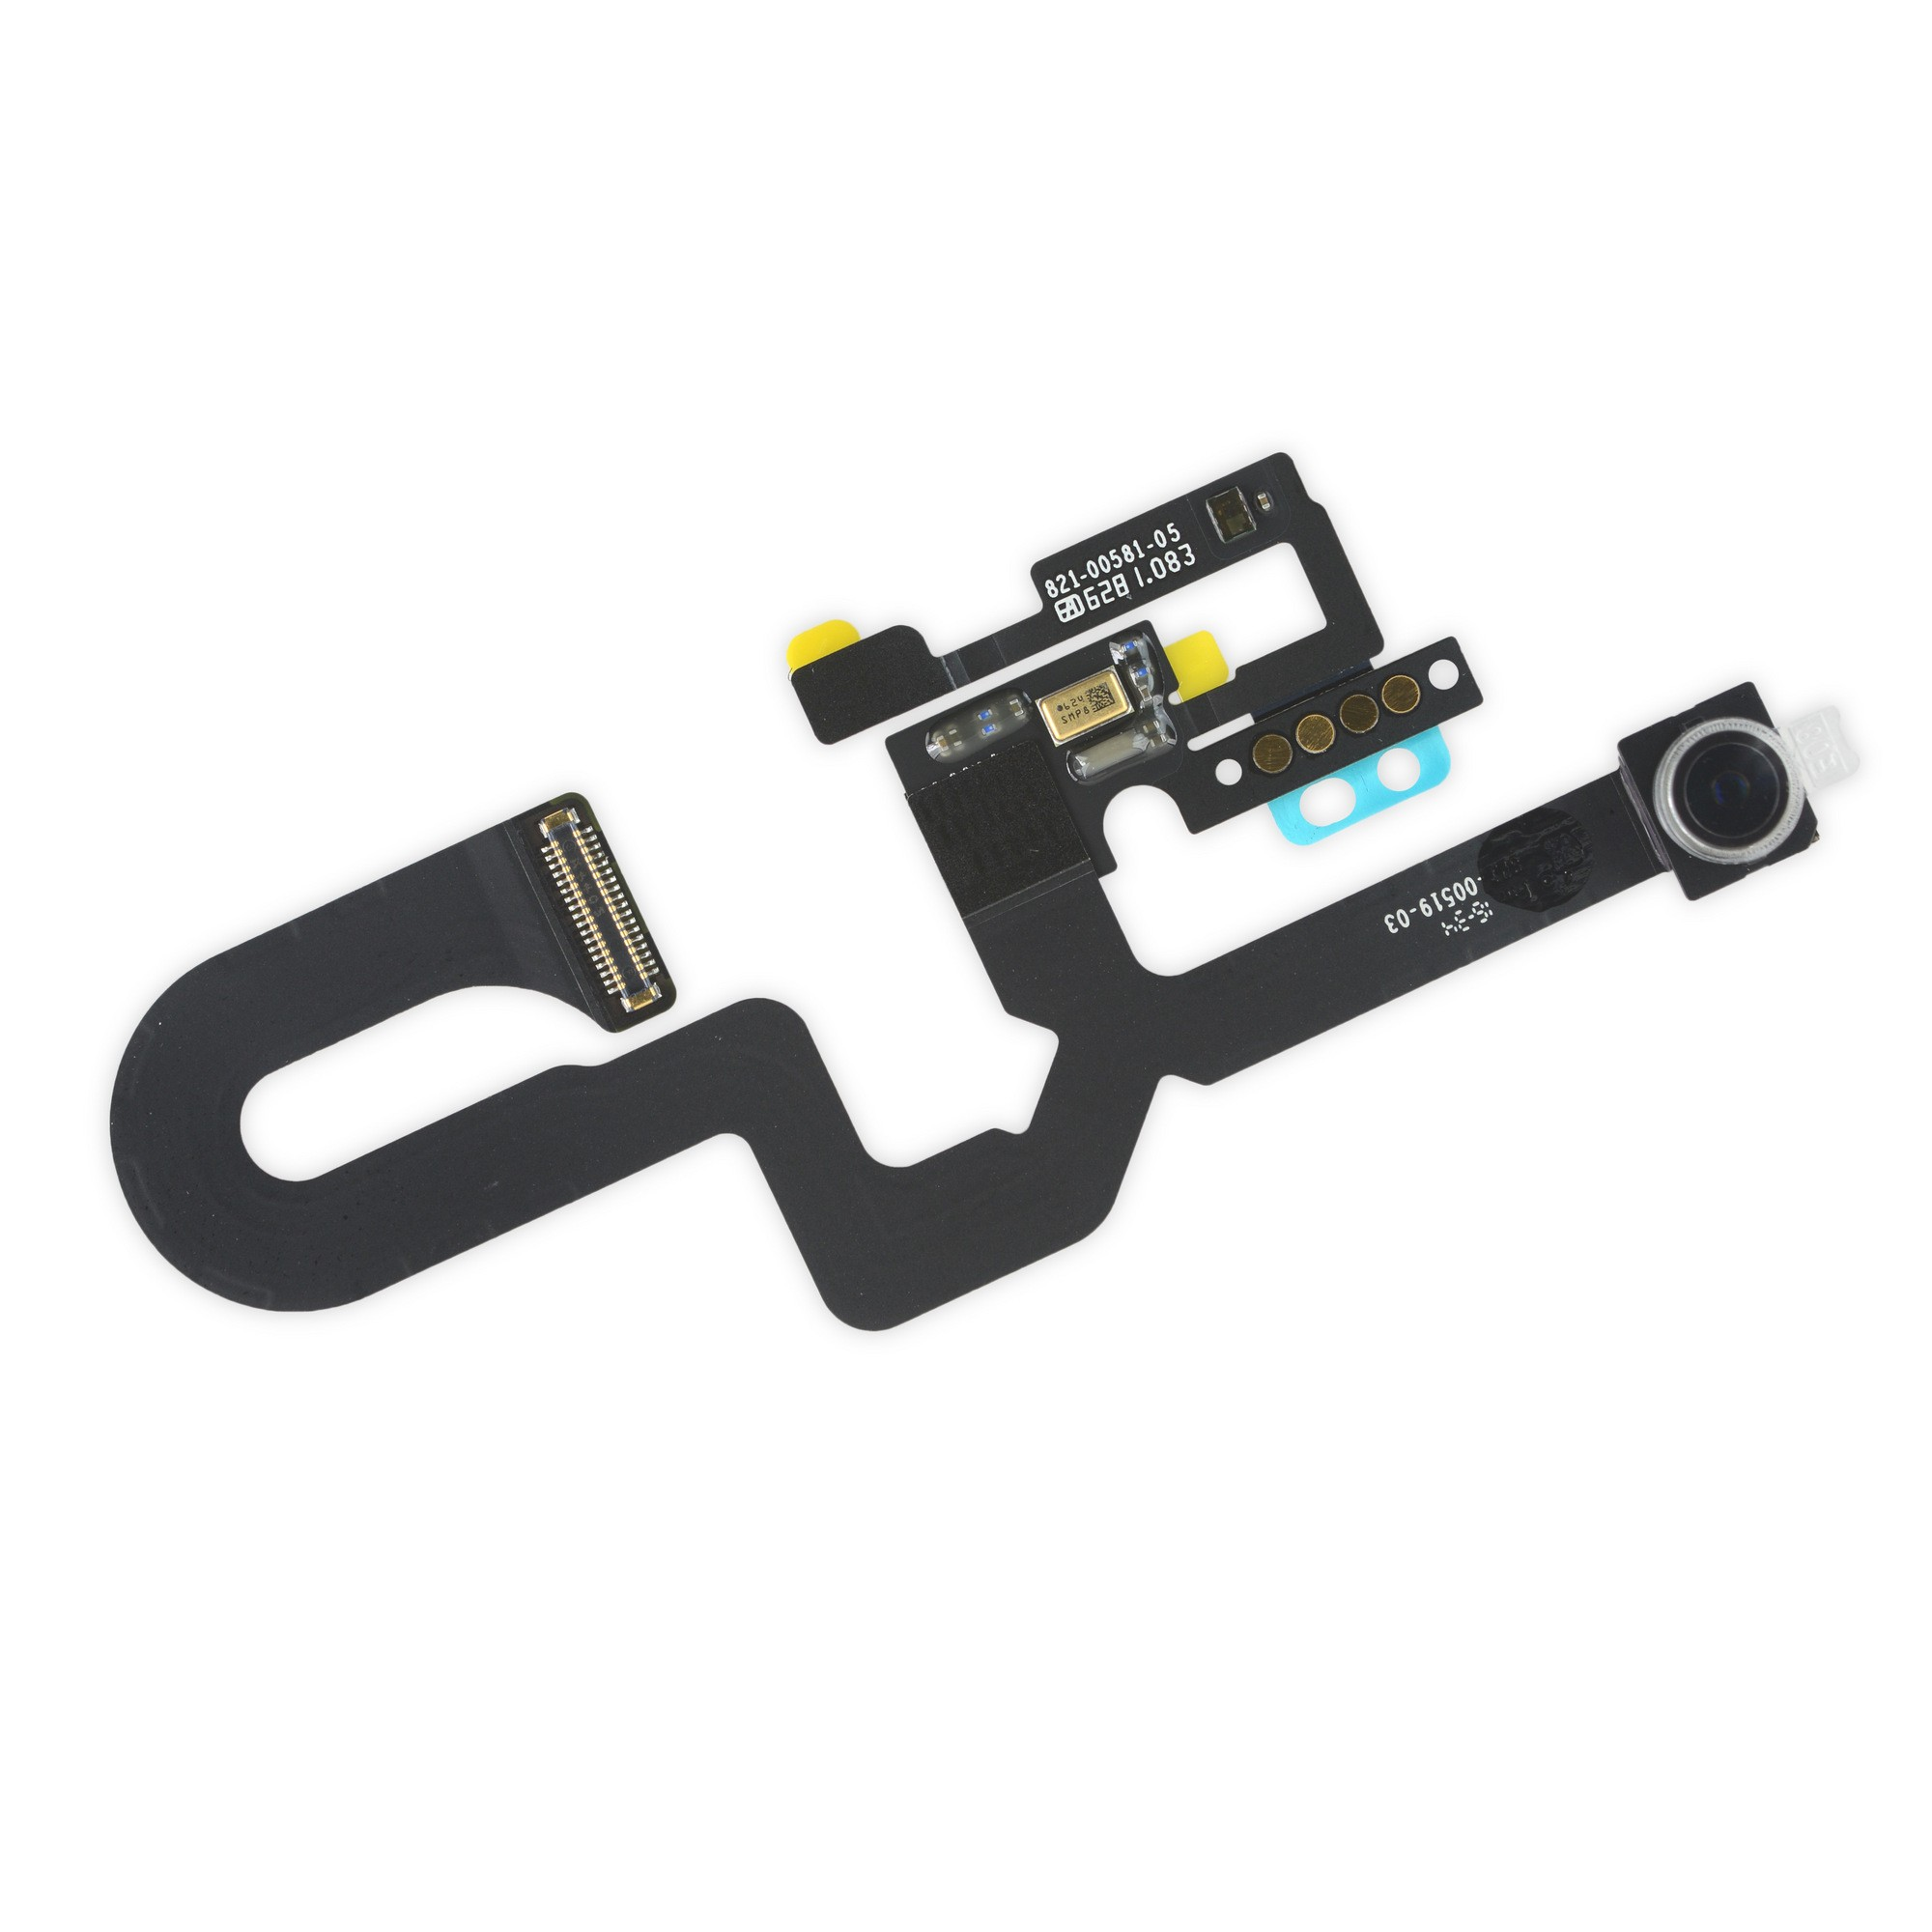 iPhone 7 Plus Front Camera and Sensor Cable, New, Fix Kit, IF333-006-2